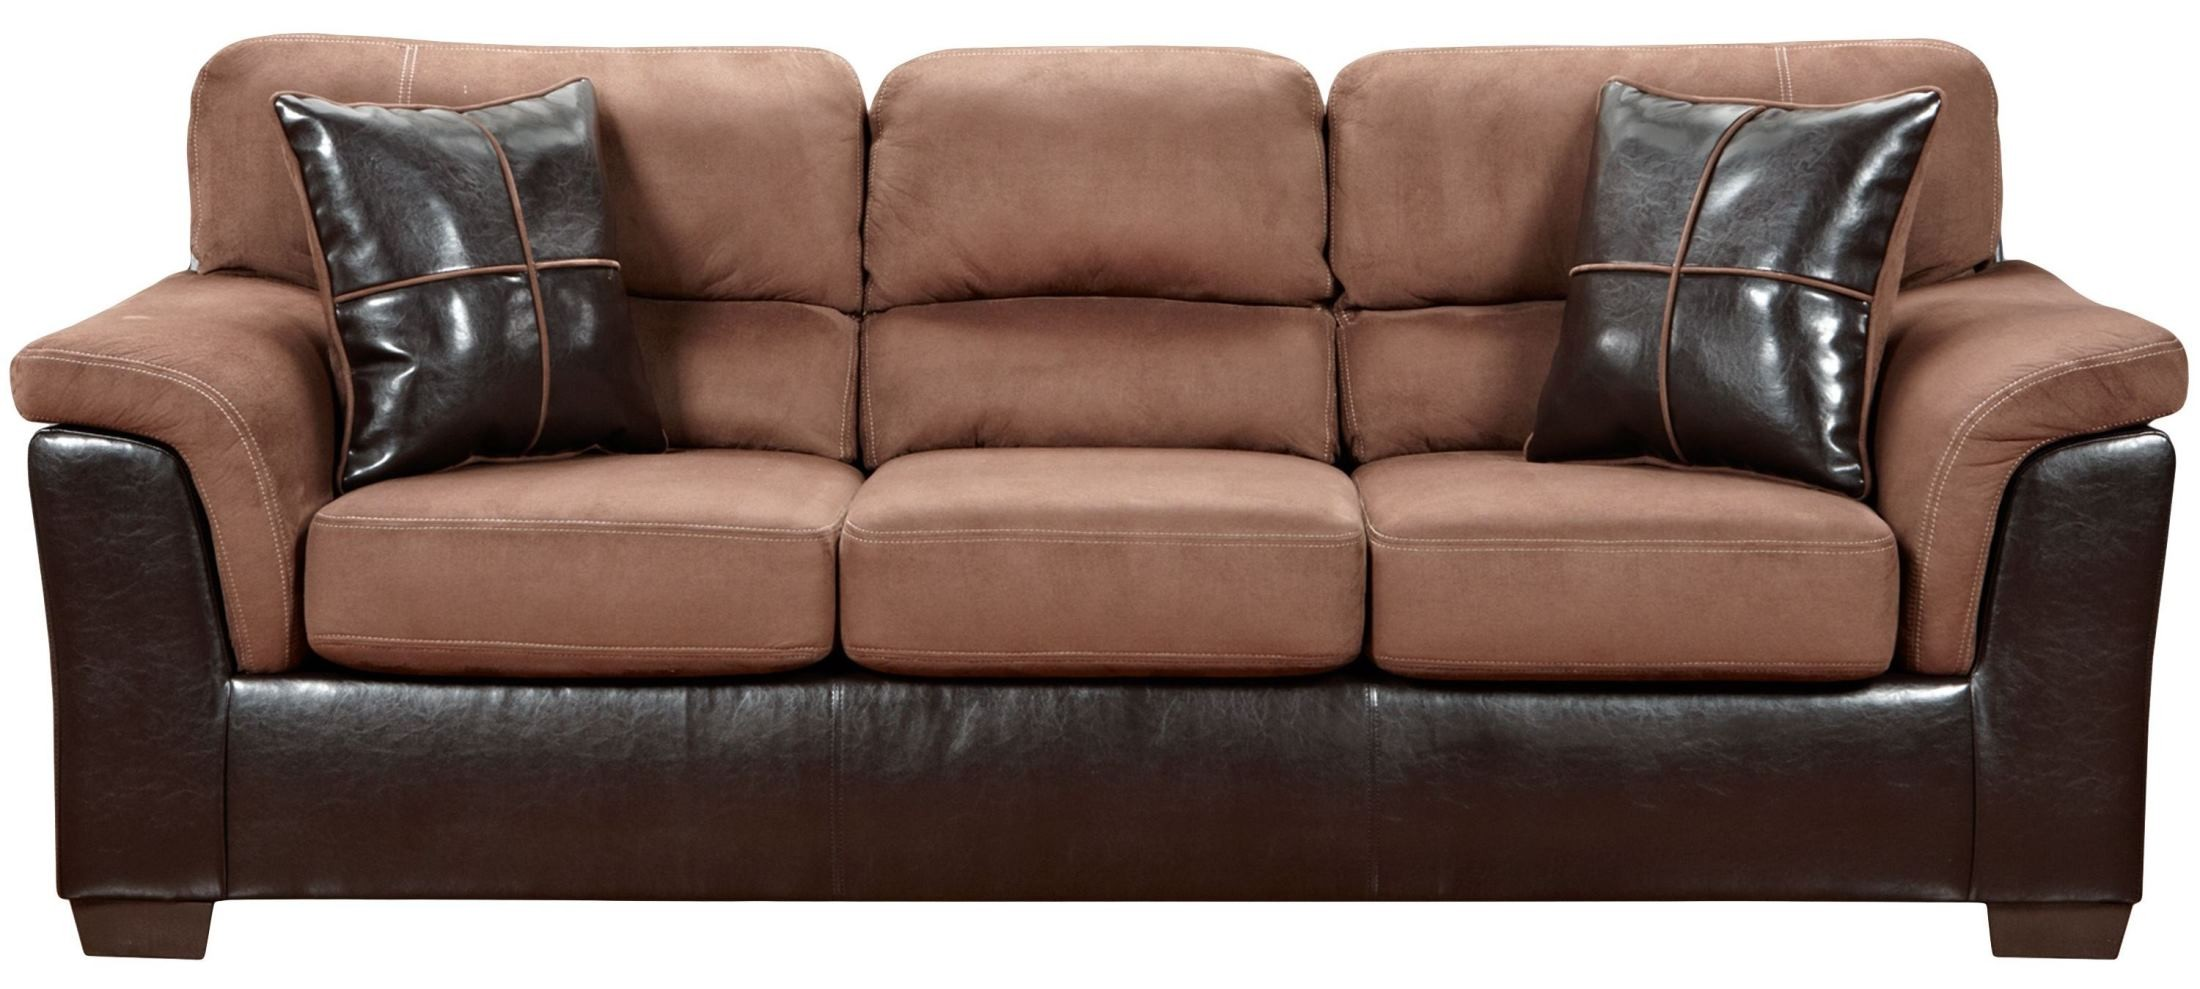 exceptional designs laredo chocolate microfiber sofa from renegade coleman furniture. Black Bedroom Furniture Sets. Home Design Ideas